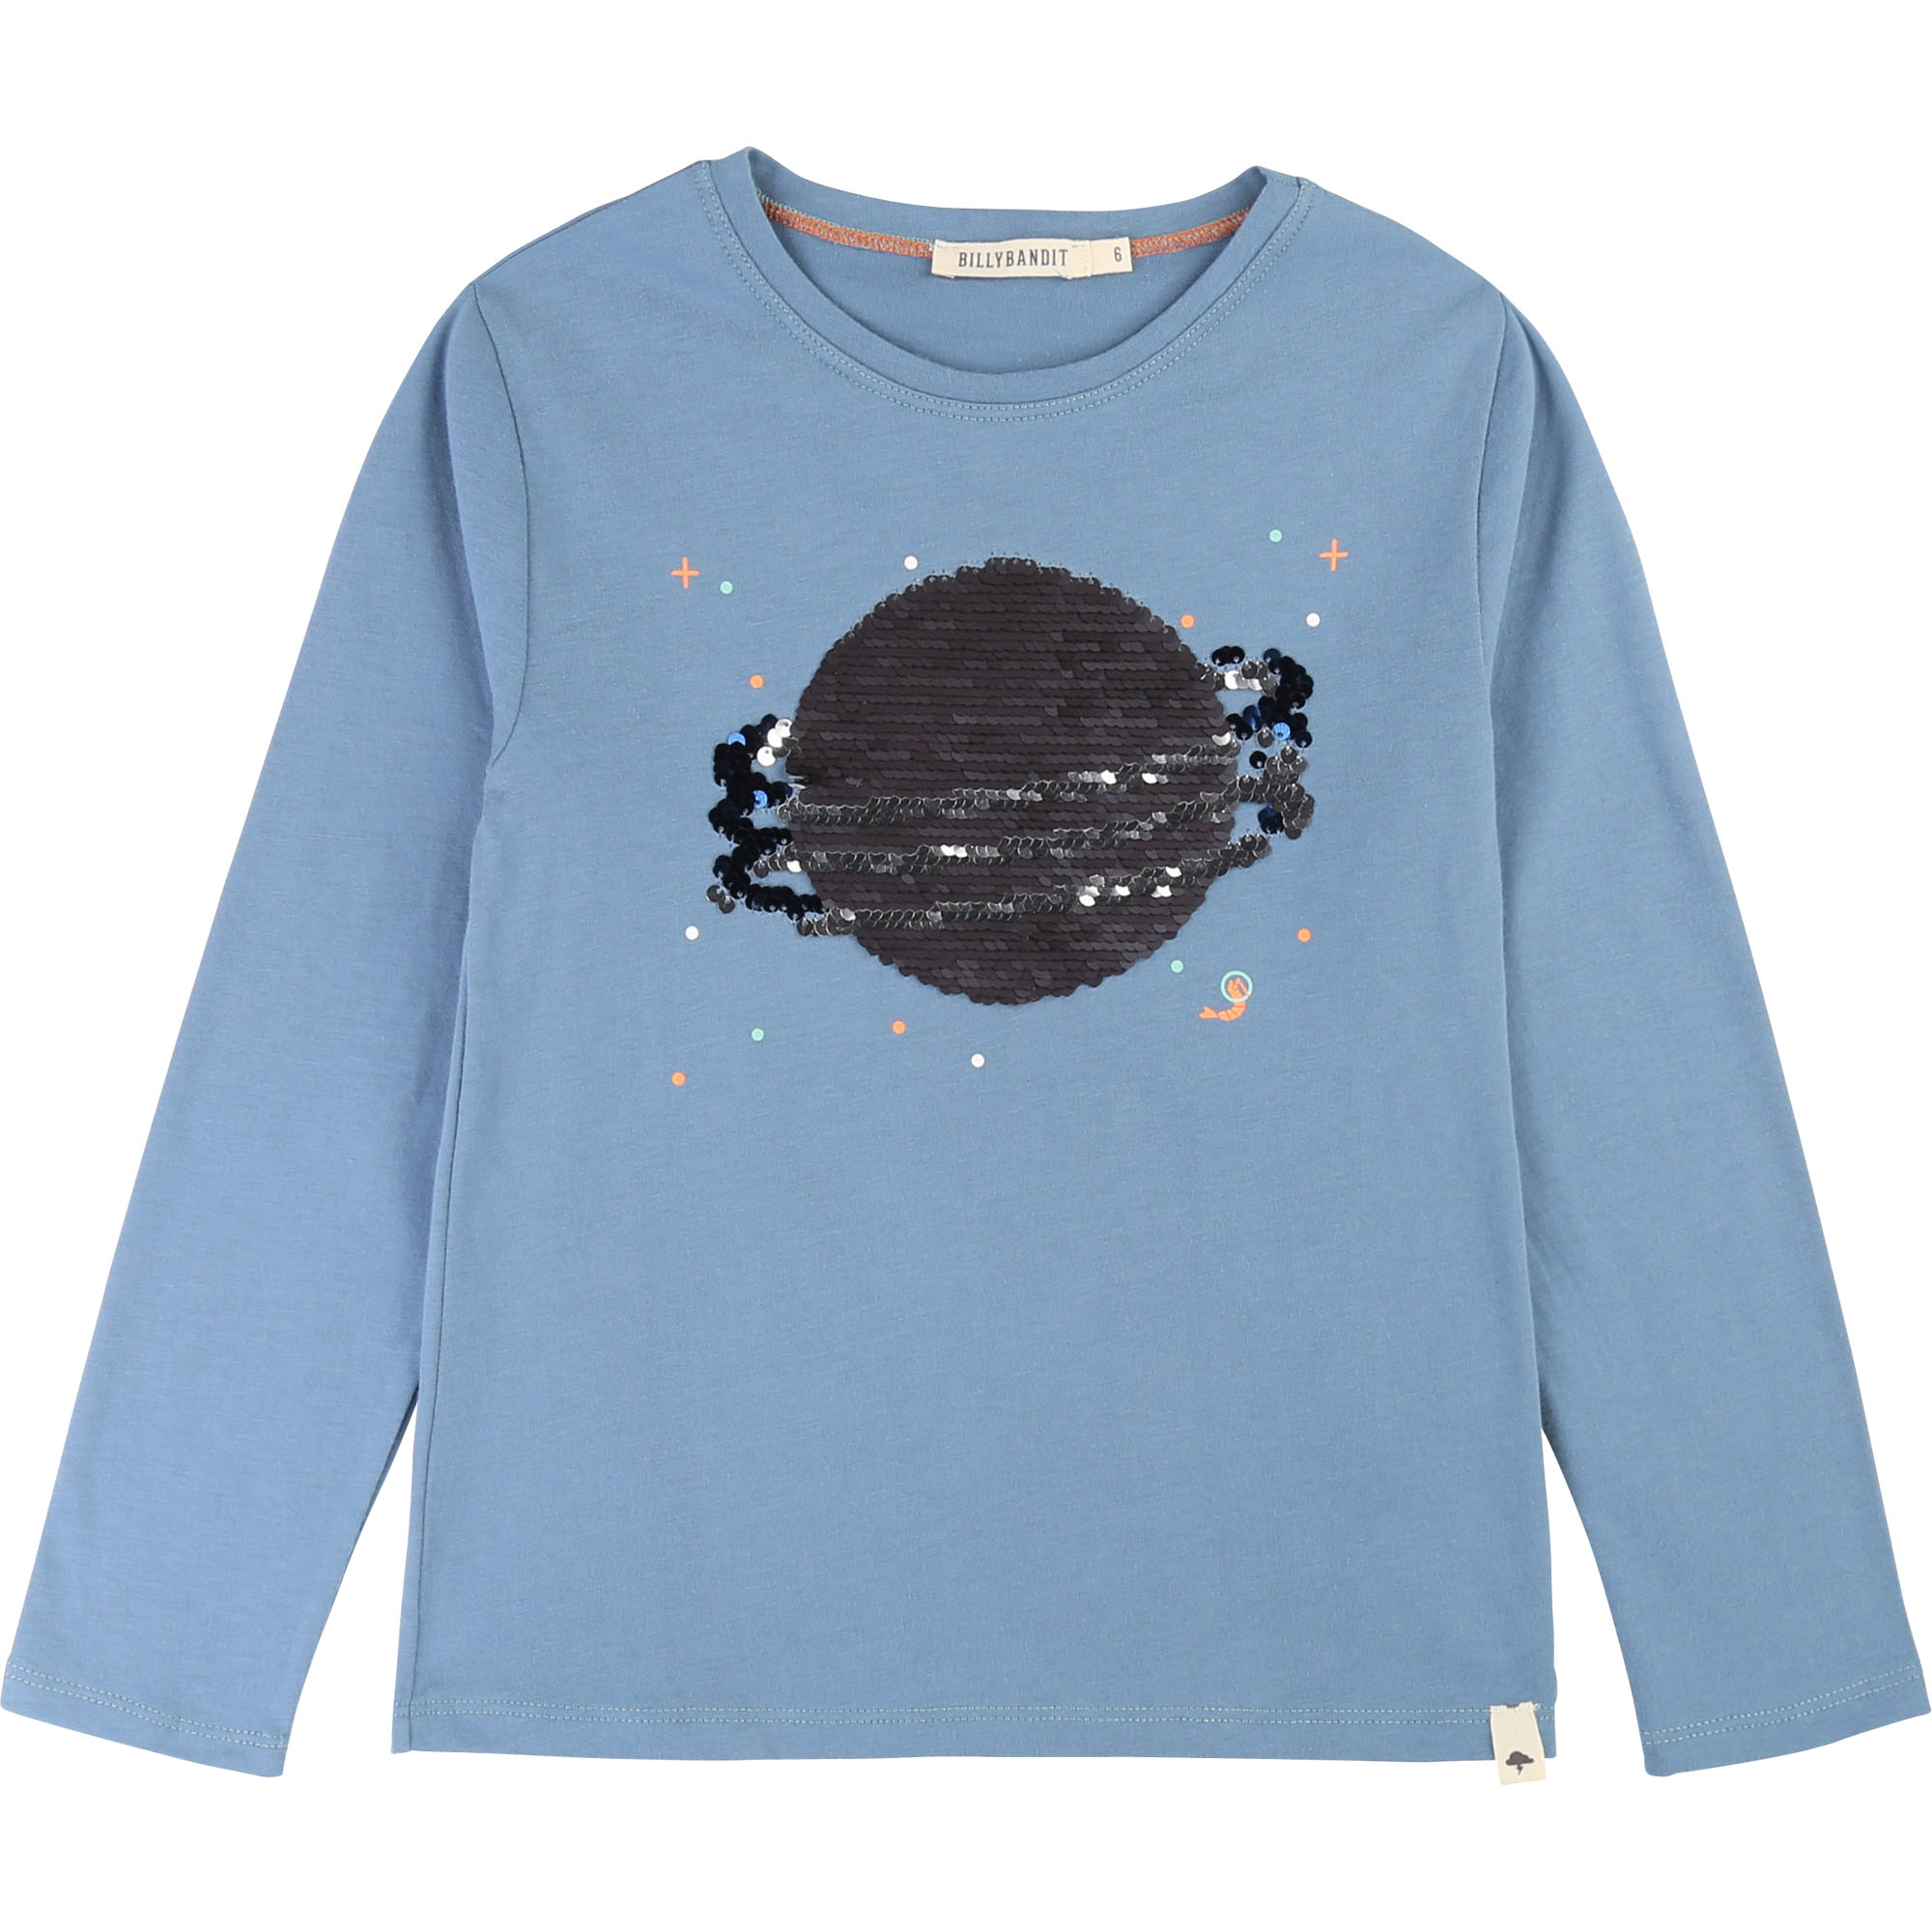 Sequin design cotton t-shirt BILLYBANDIT for BOY